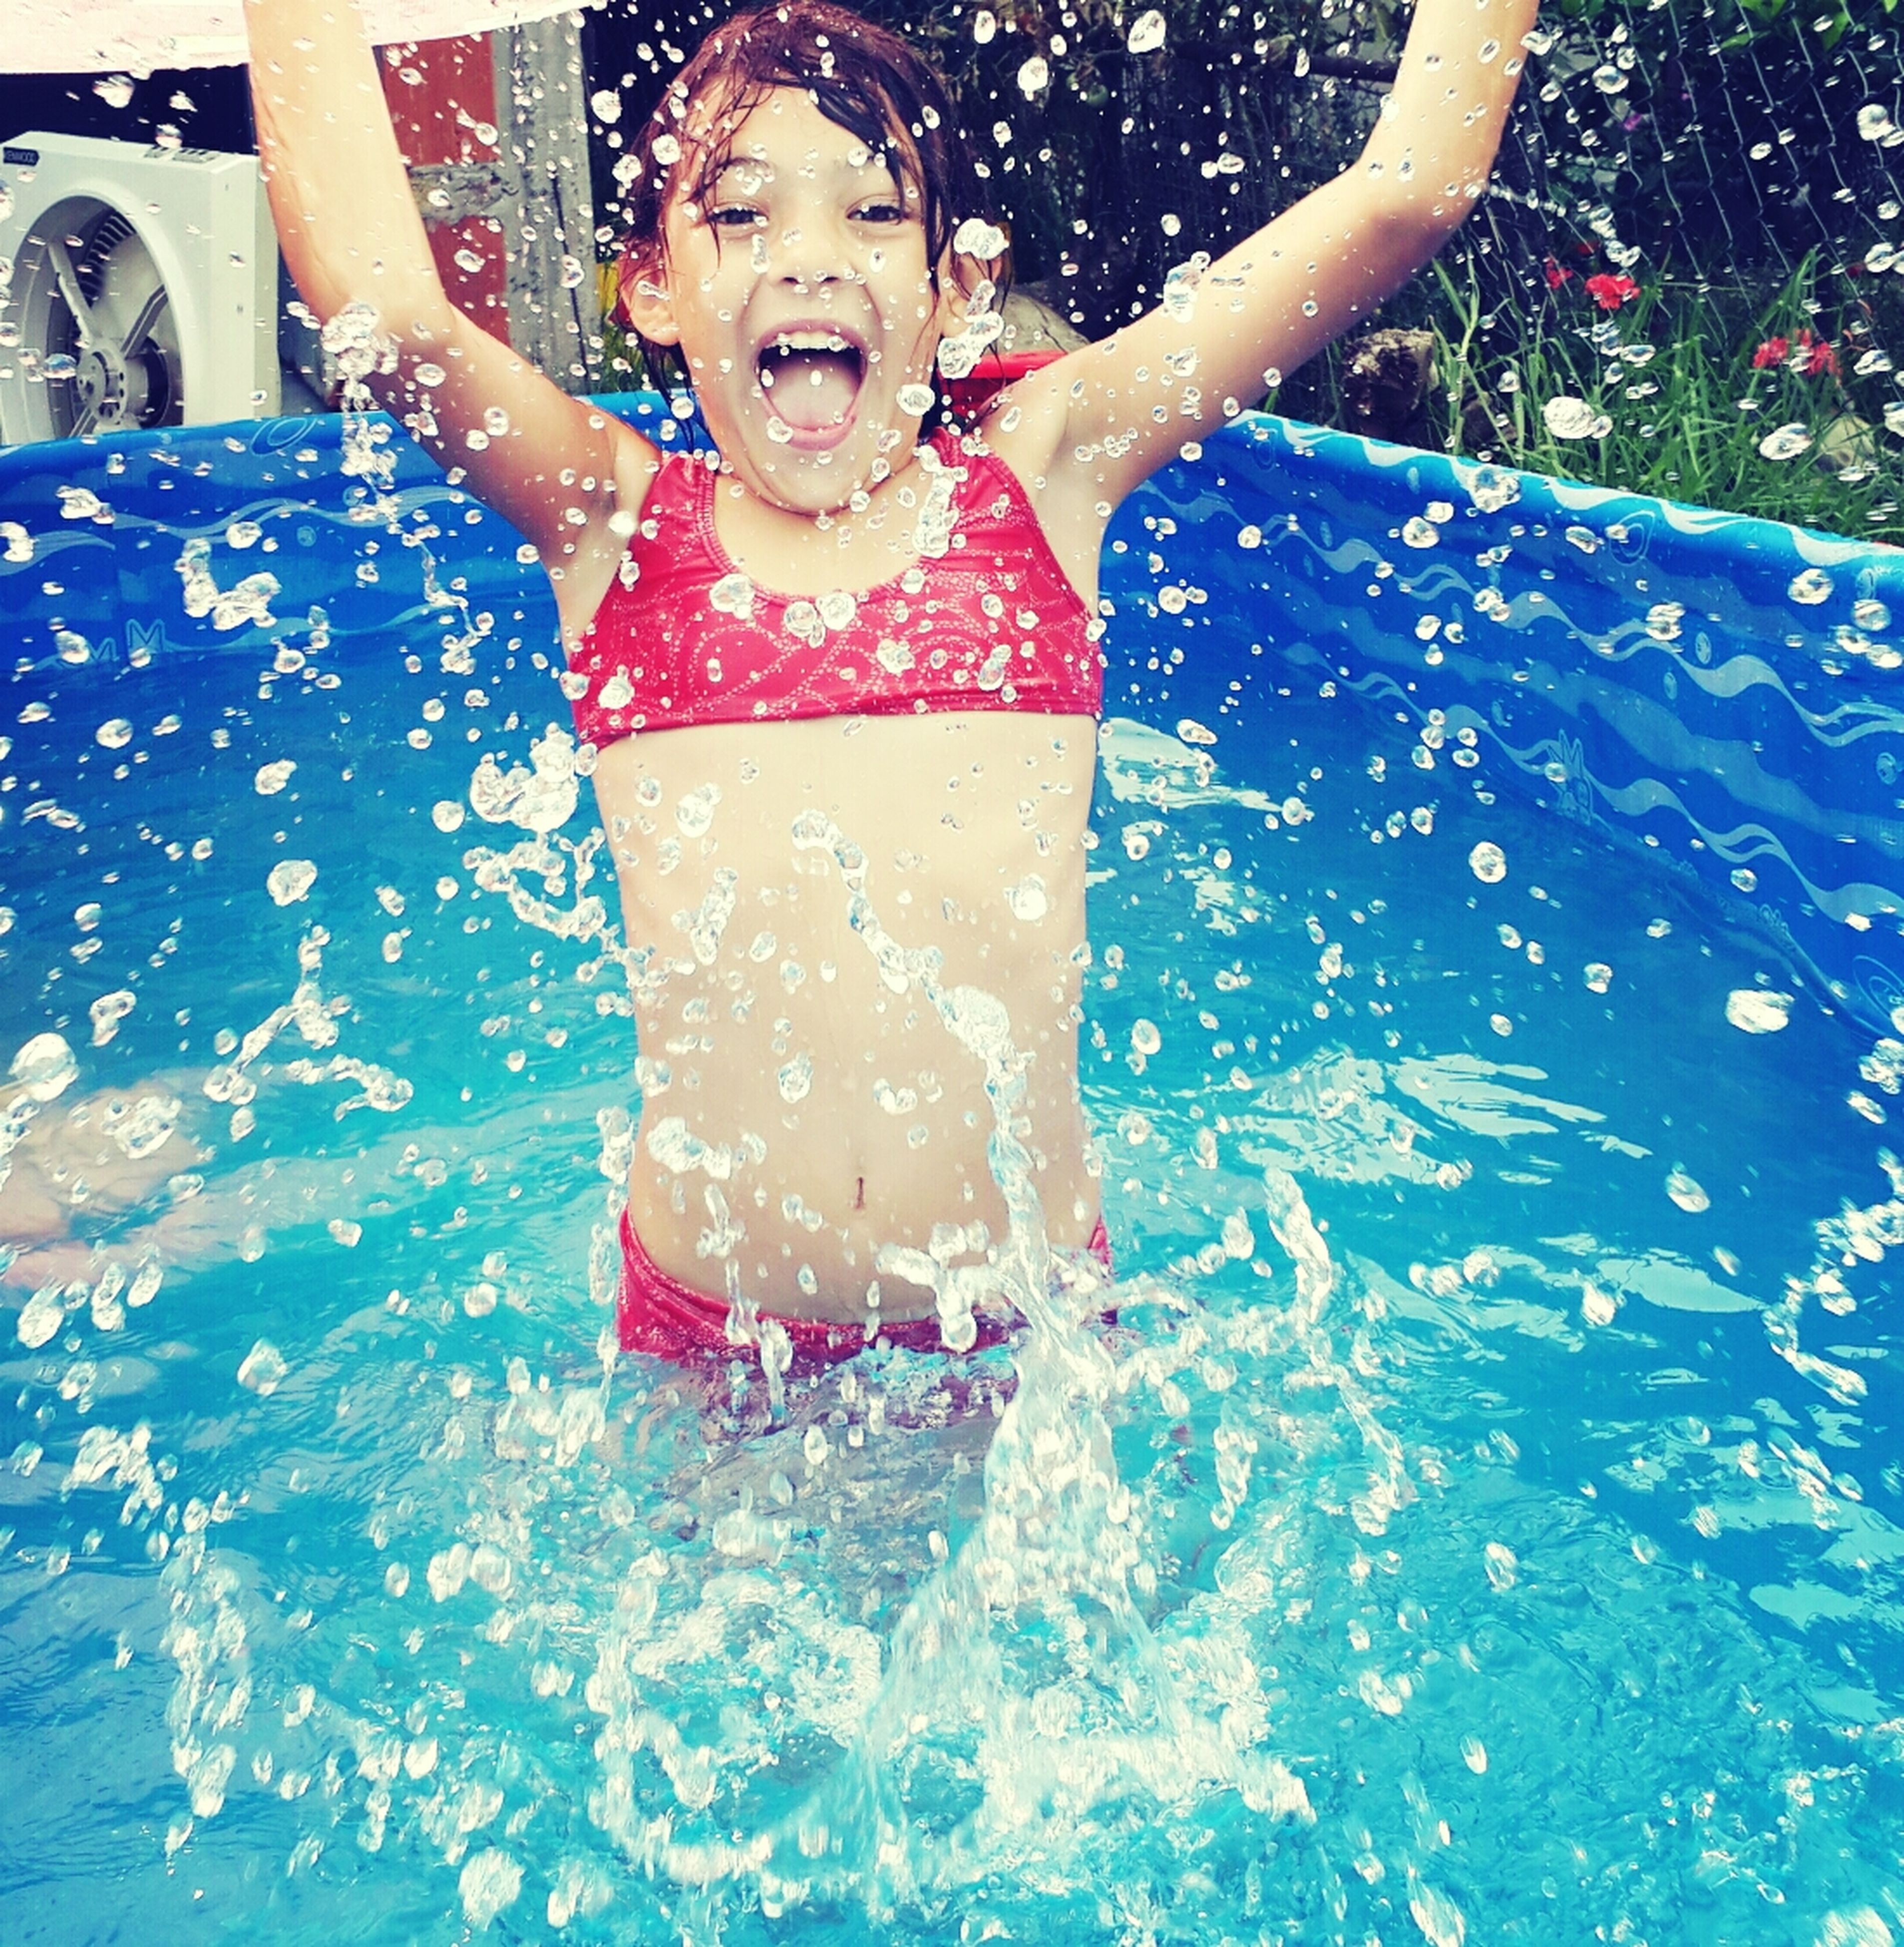 water, lifestyles, leisure activity, person, swimming pool, enjoyment, front view, fun, childhood, happiness, looking at camera, portrait, young adult, smiling, elementary age, vacations, girls, full length